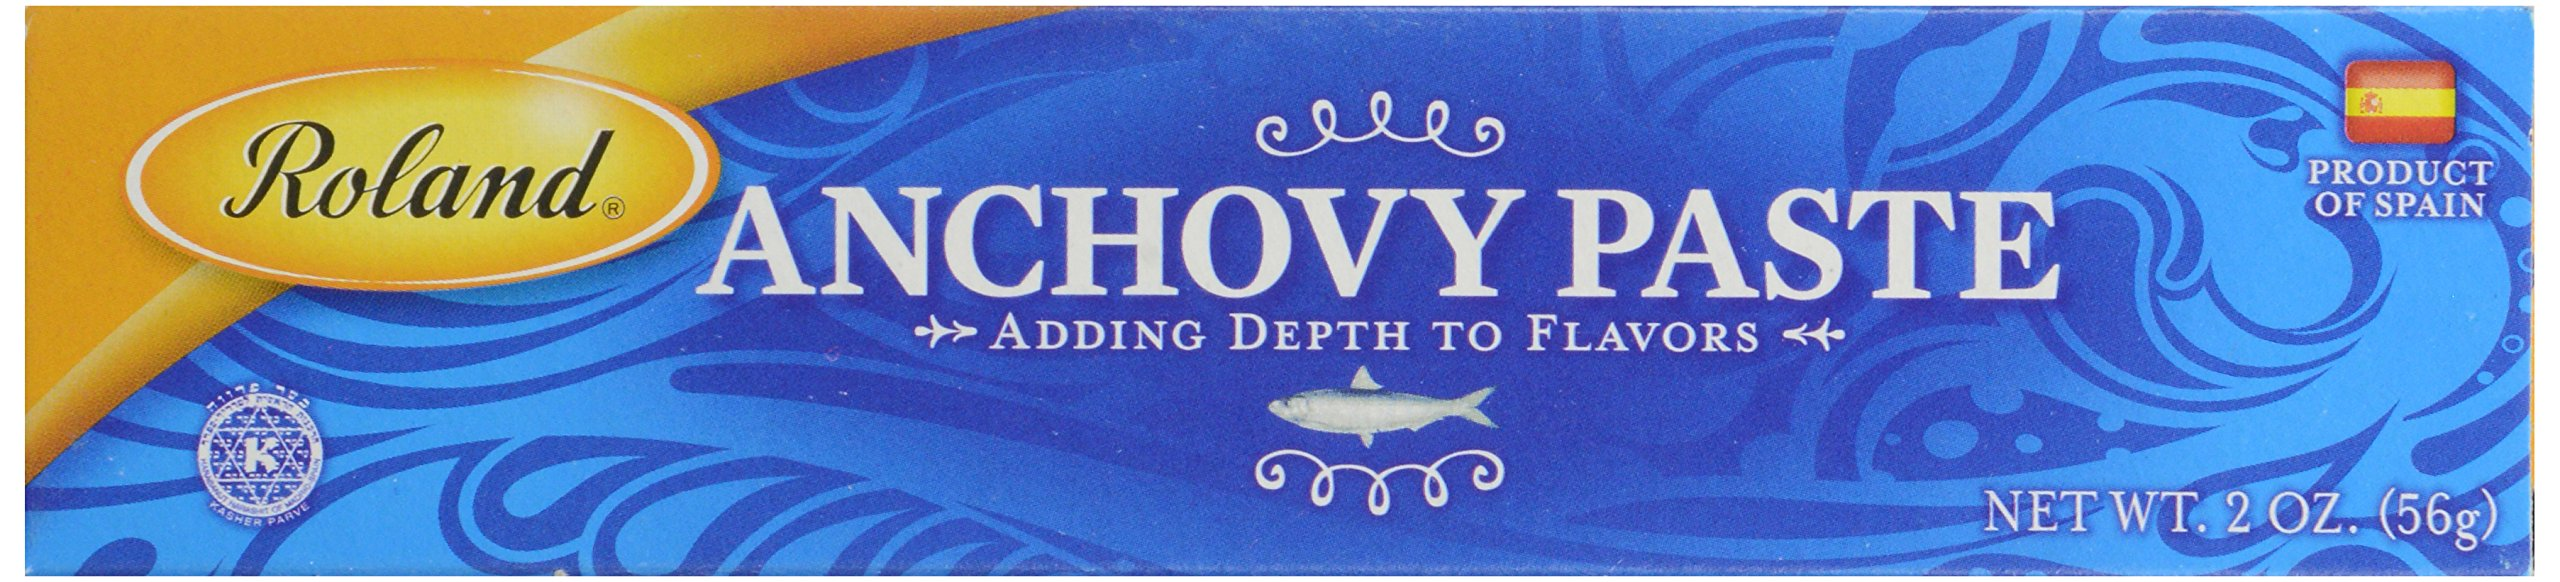 Roland Products Anchovy Paste 2 oz. 5 Anchovy Paste Is Made From The Finest Spanish Anchovies, Ground Into A Fine Paste Reddish Brown Color With A Moderately Pronounced Fish Flavor And A Salty Bite Paste is normally kept under cool temperatures, but it will holdup under heat